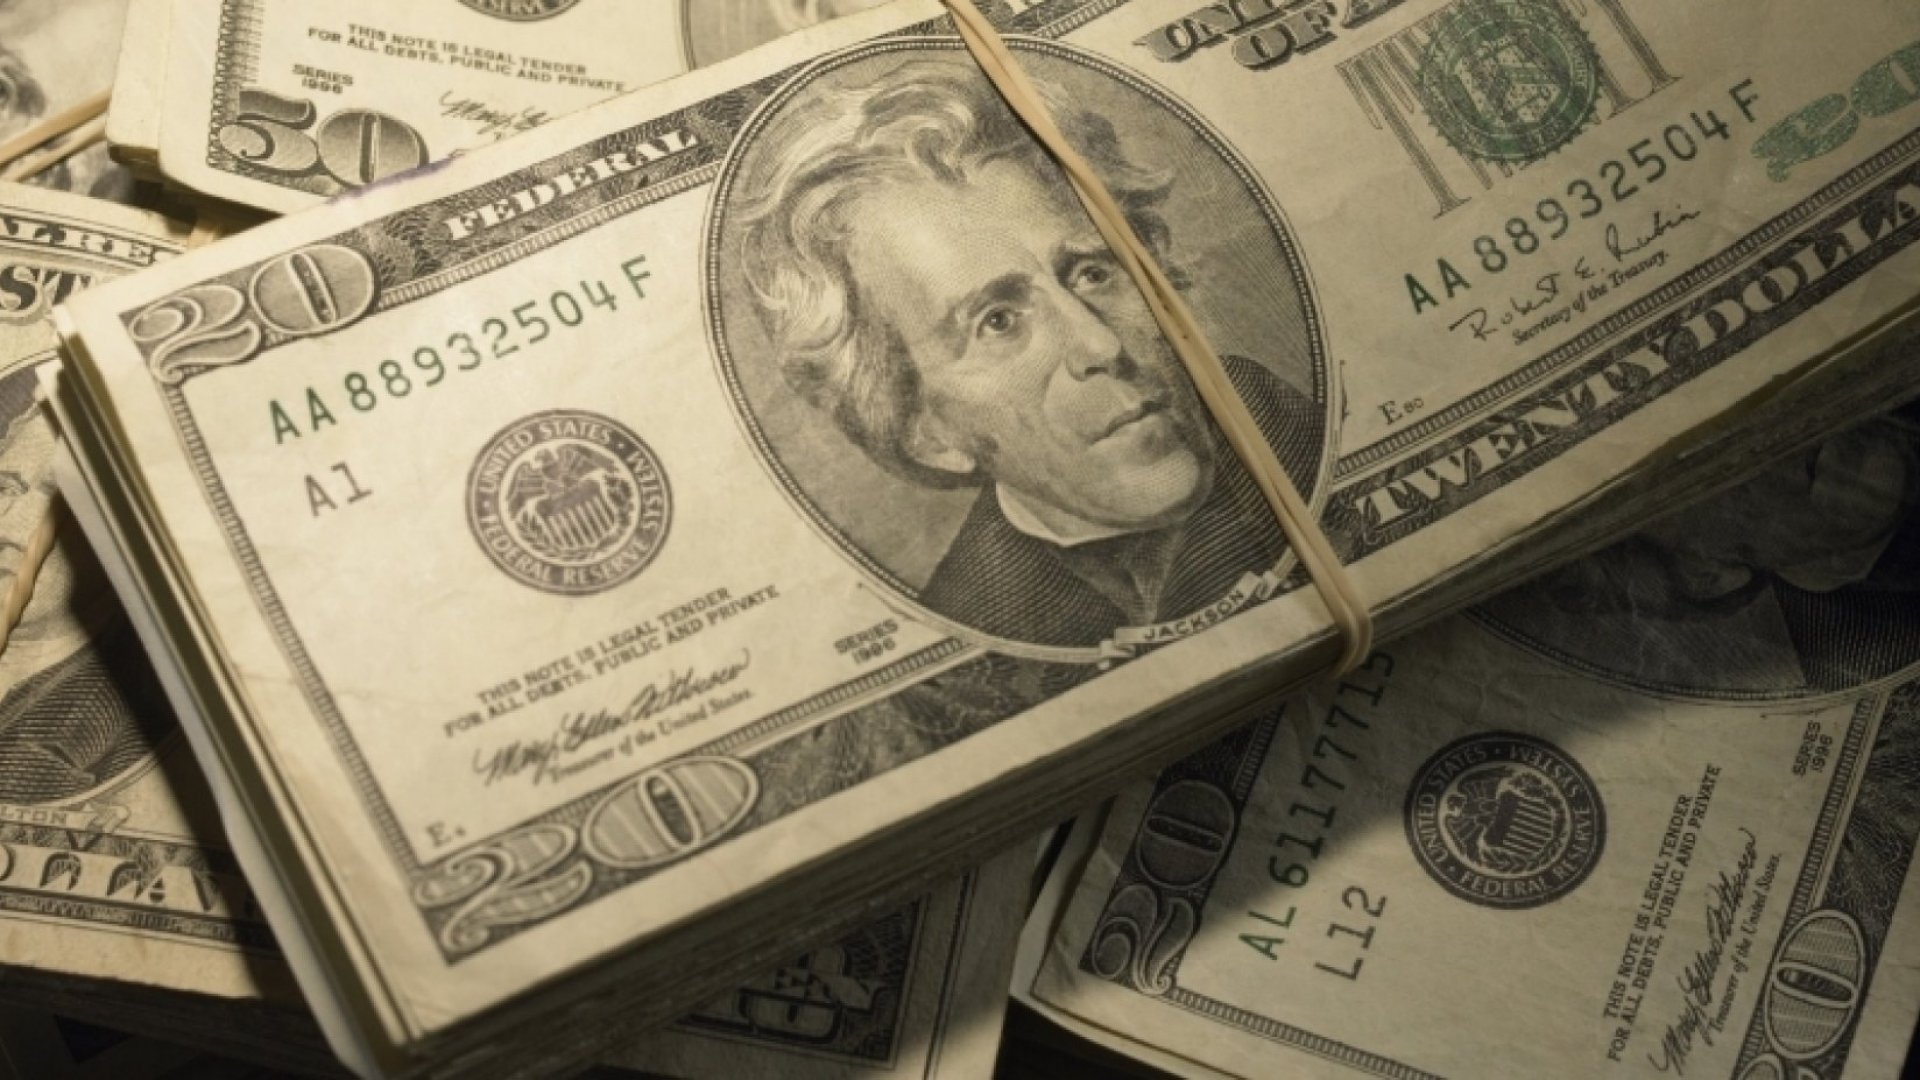 3 Big Reasons Startup CEOs Choose Cashing Out Over Growing The Business